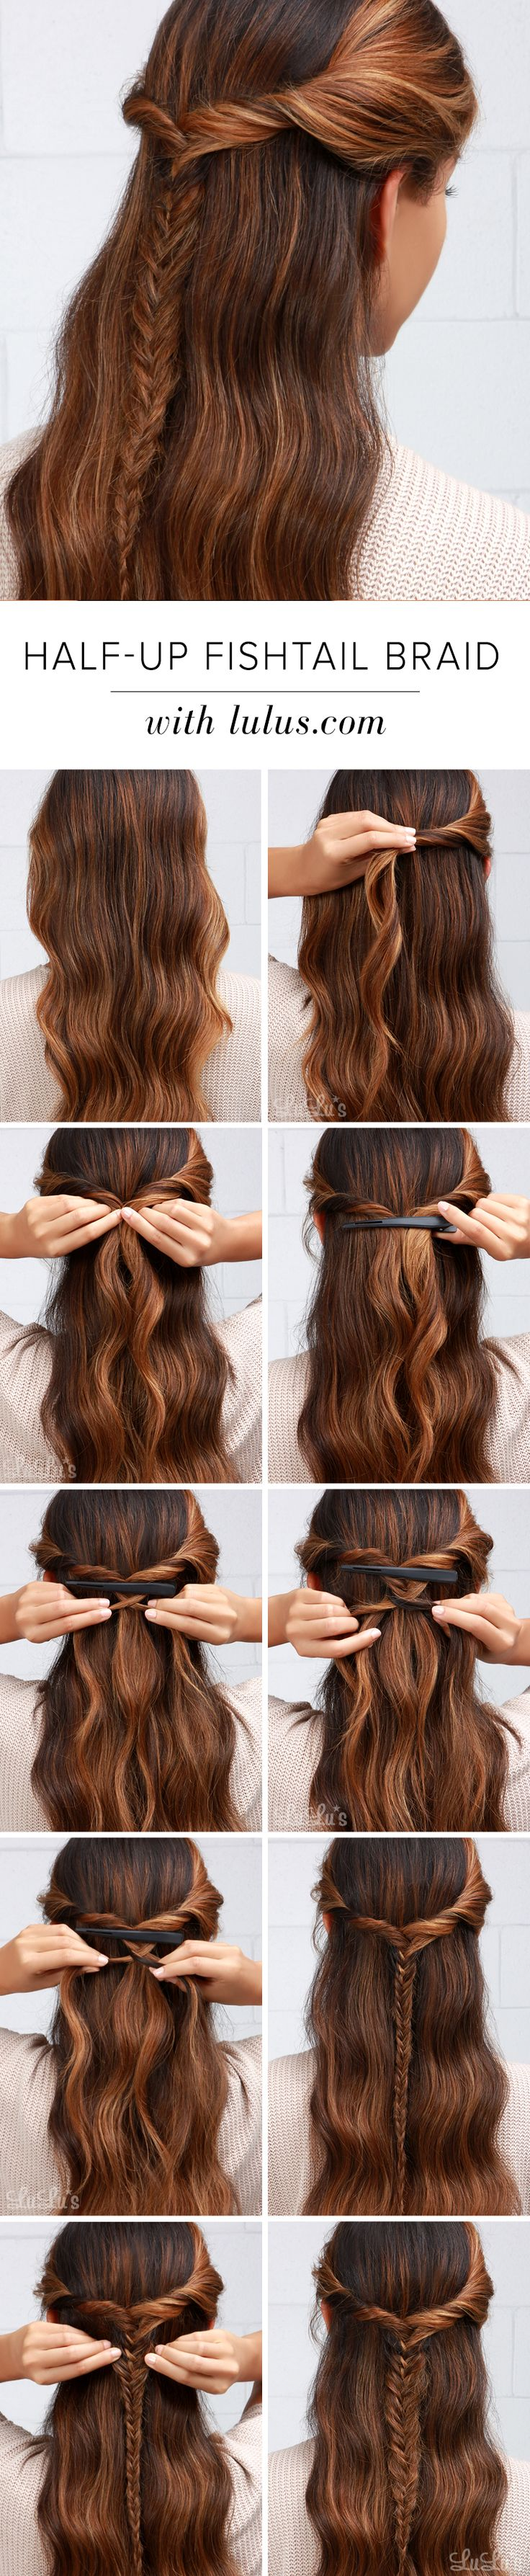 682 best Hairstyles Tutorials DIY images on Pinterest